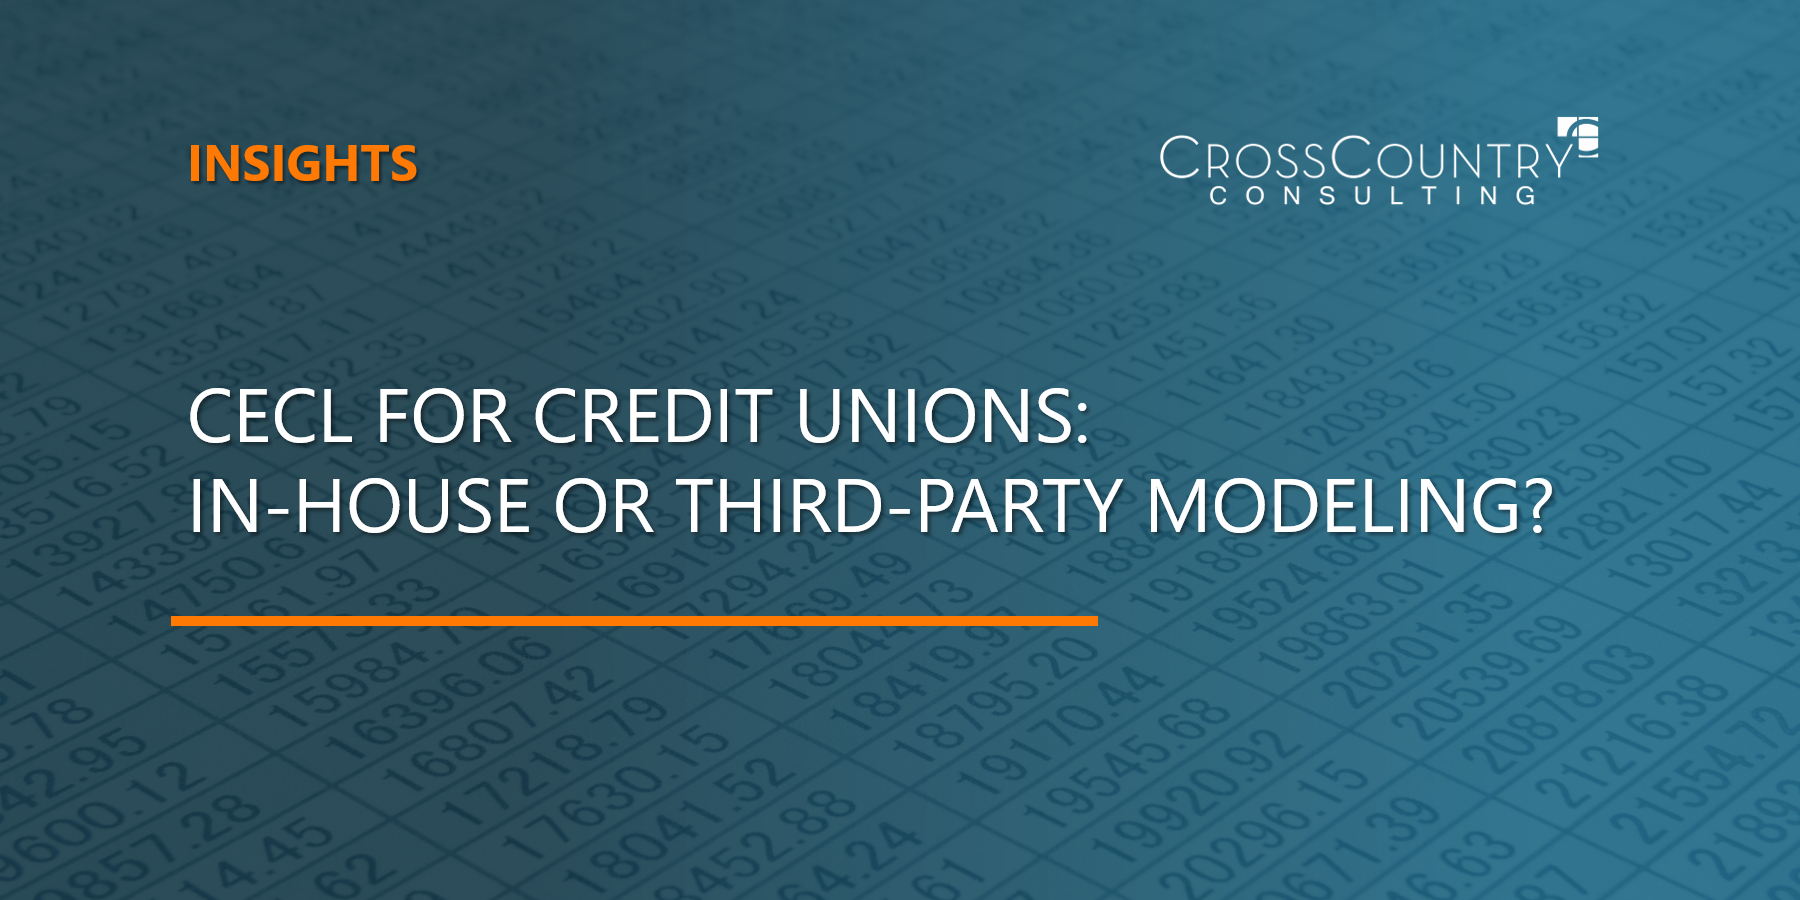 CECL for Credit Unions: In-House or Third-Party Modeling?